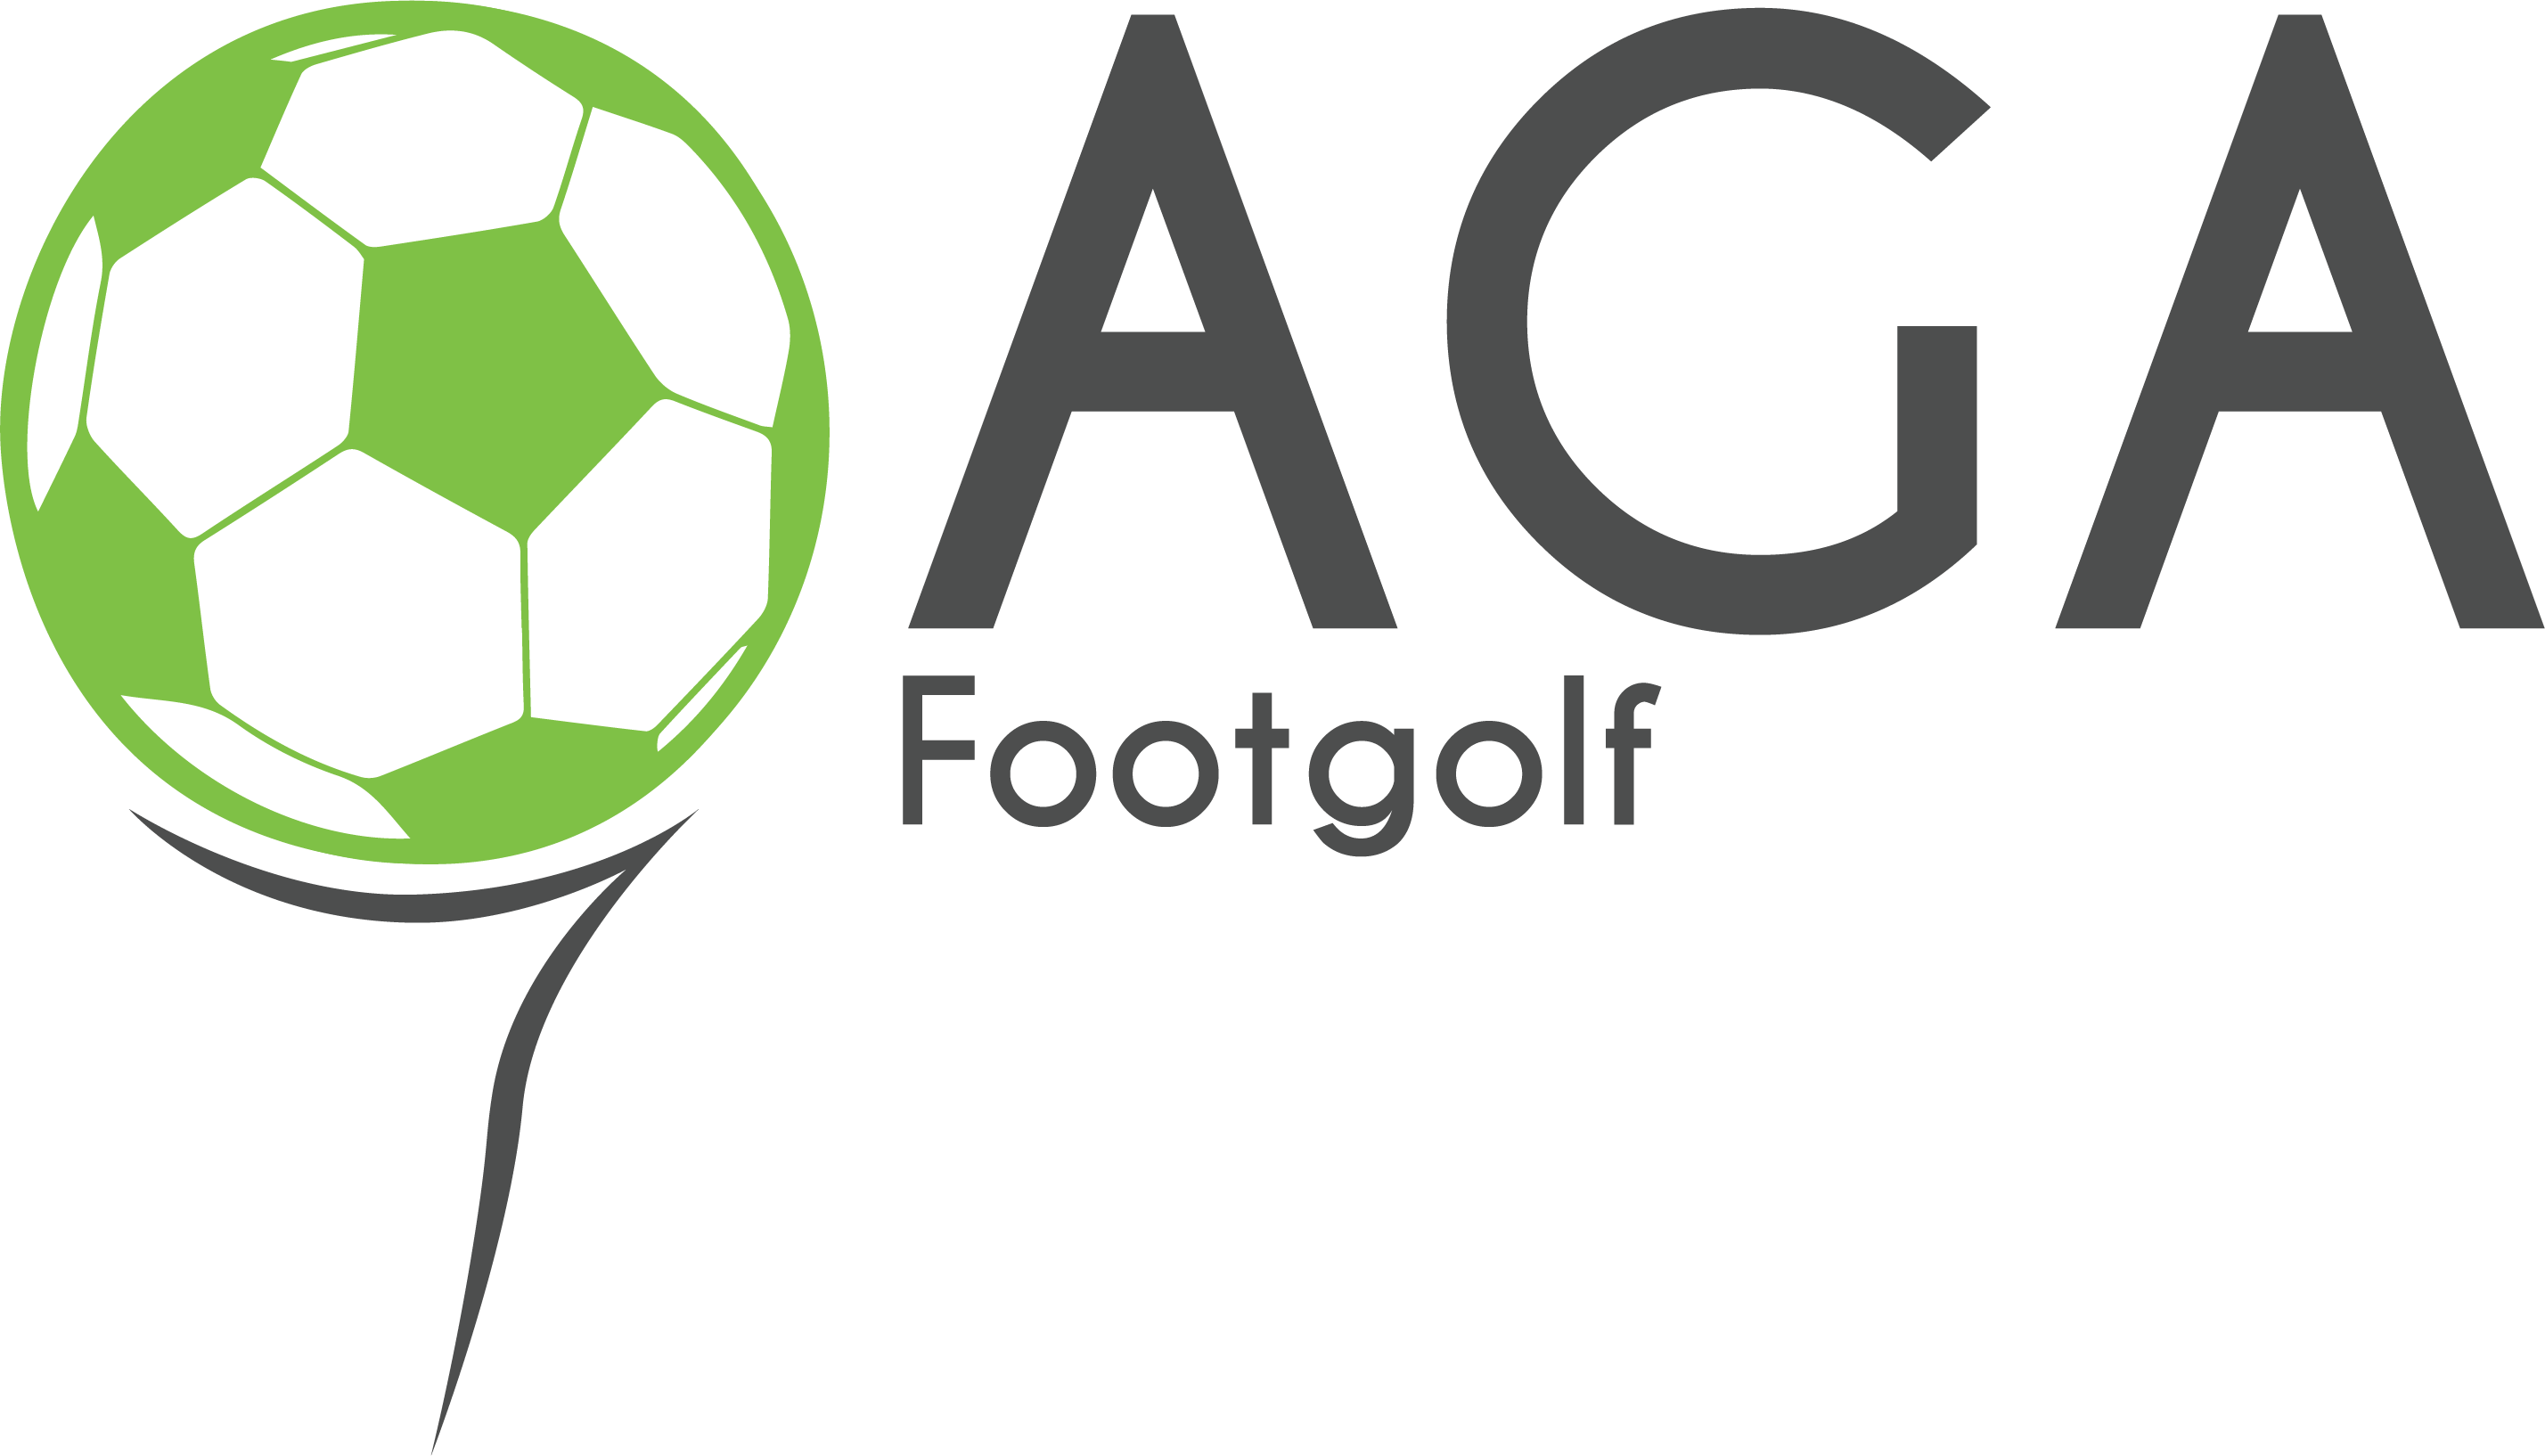 Aga Footgolf